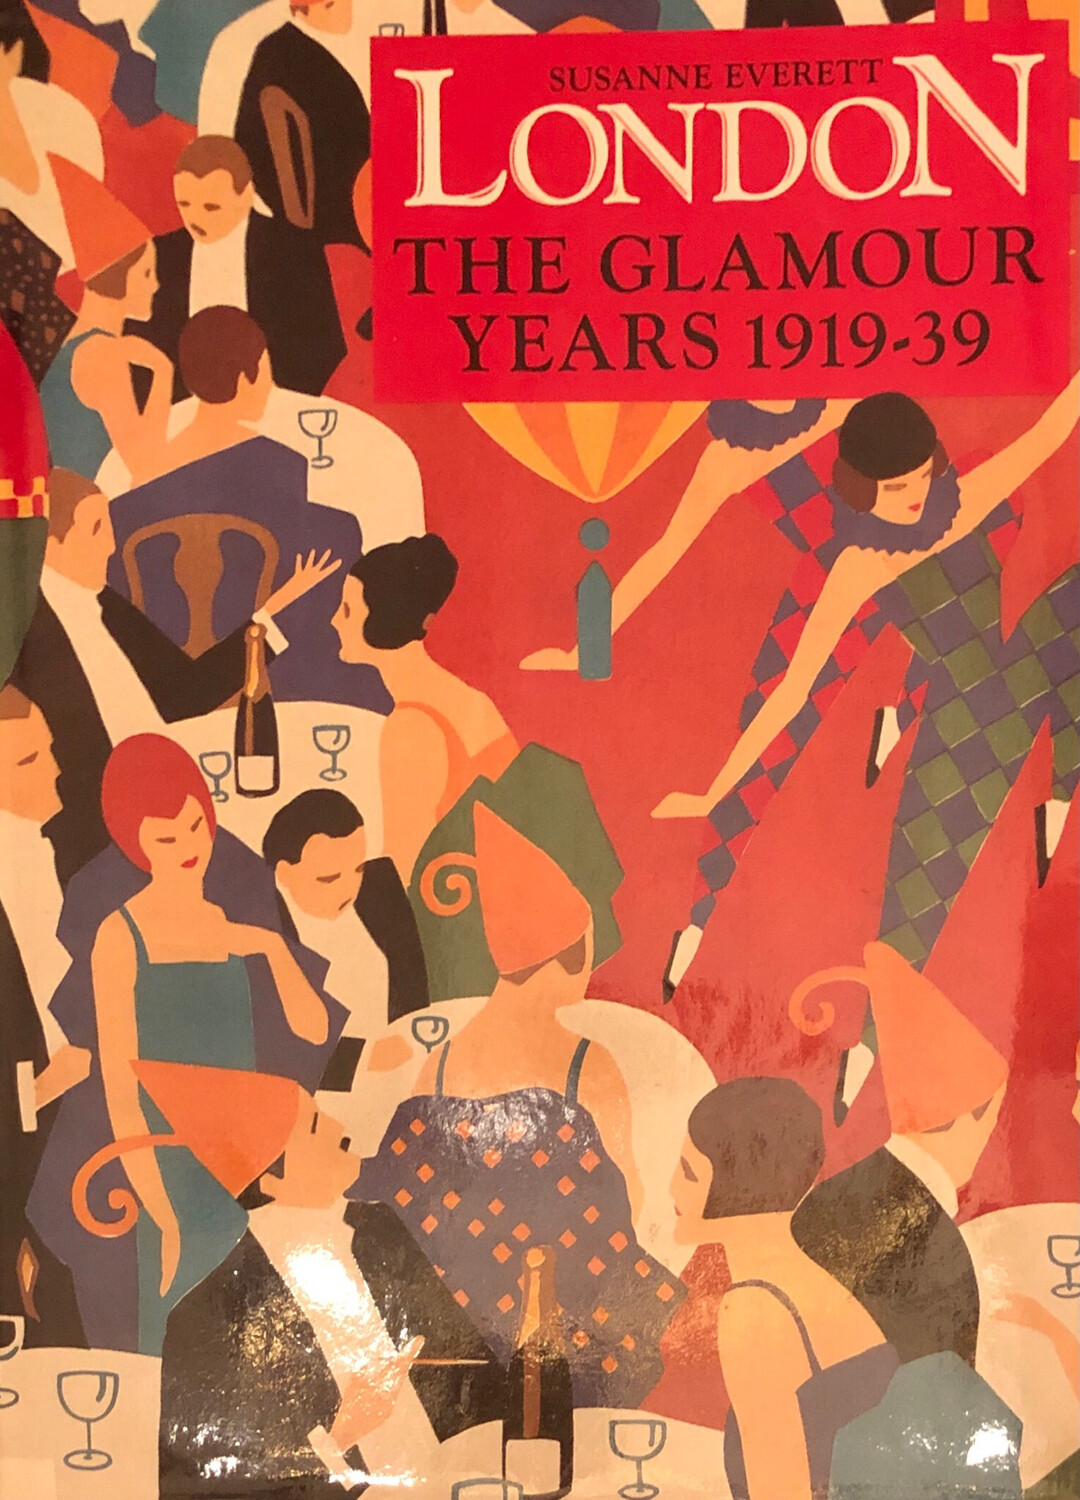 London The Glamour Years 1919-39 Book